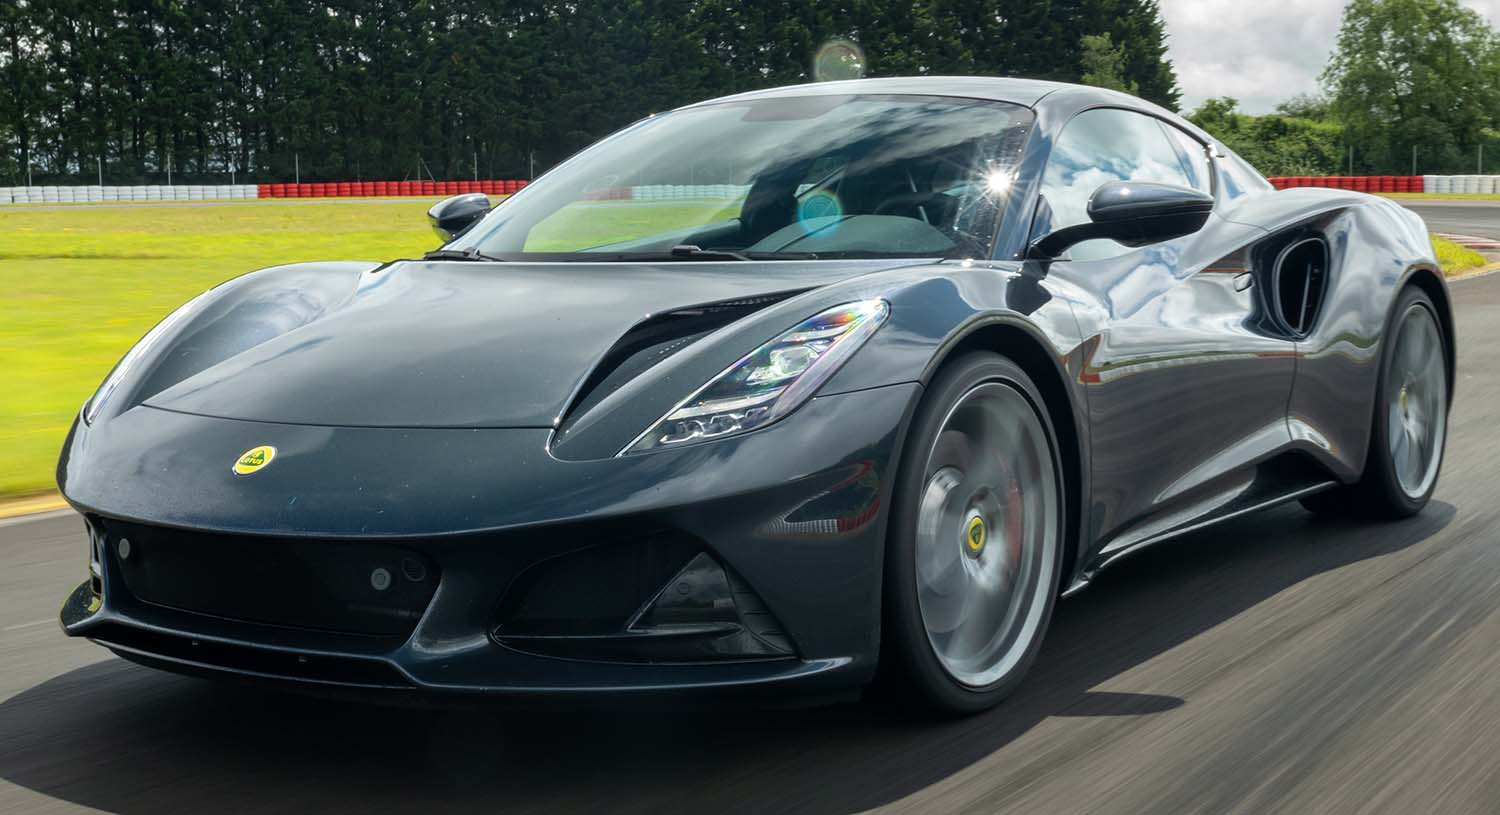 Lotus Emira To Dazzle With Dynamic Debut At This Weekend's Goodwood Festival Of Speed